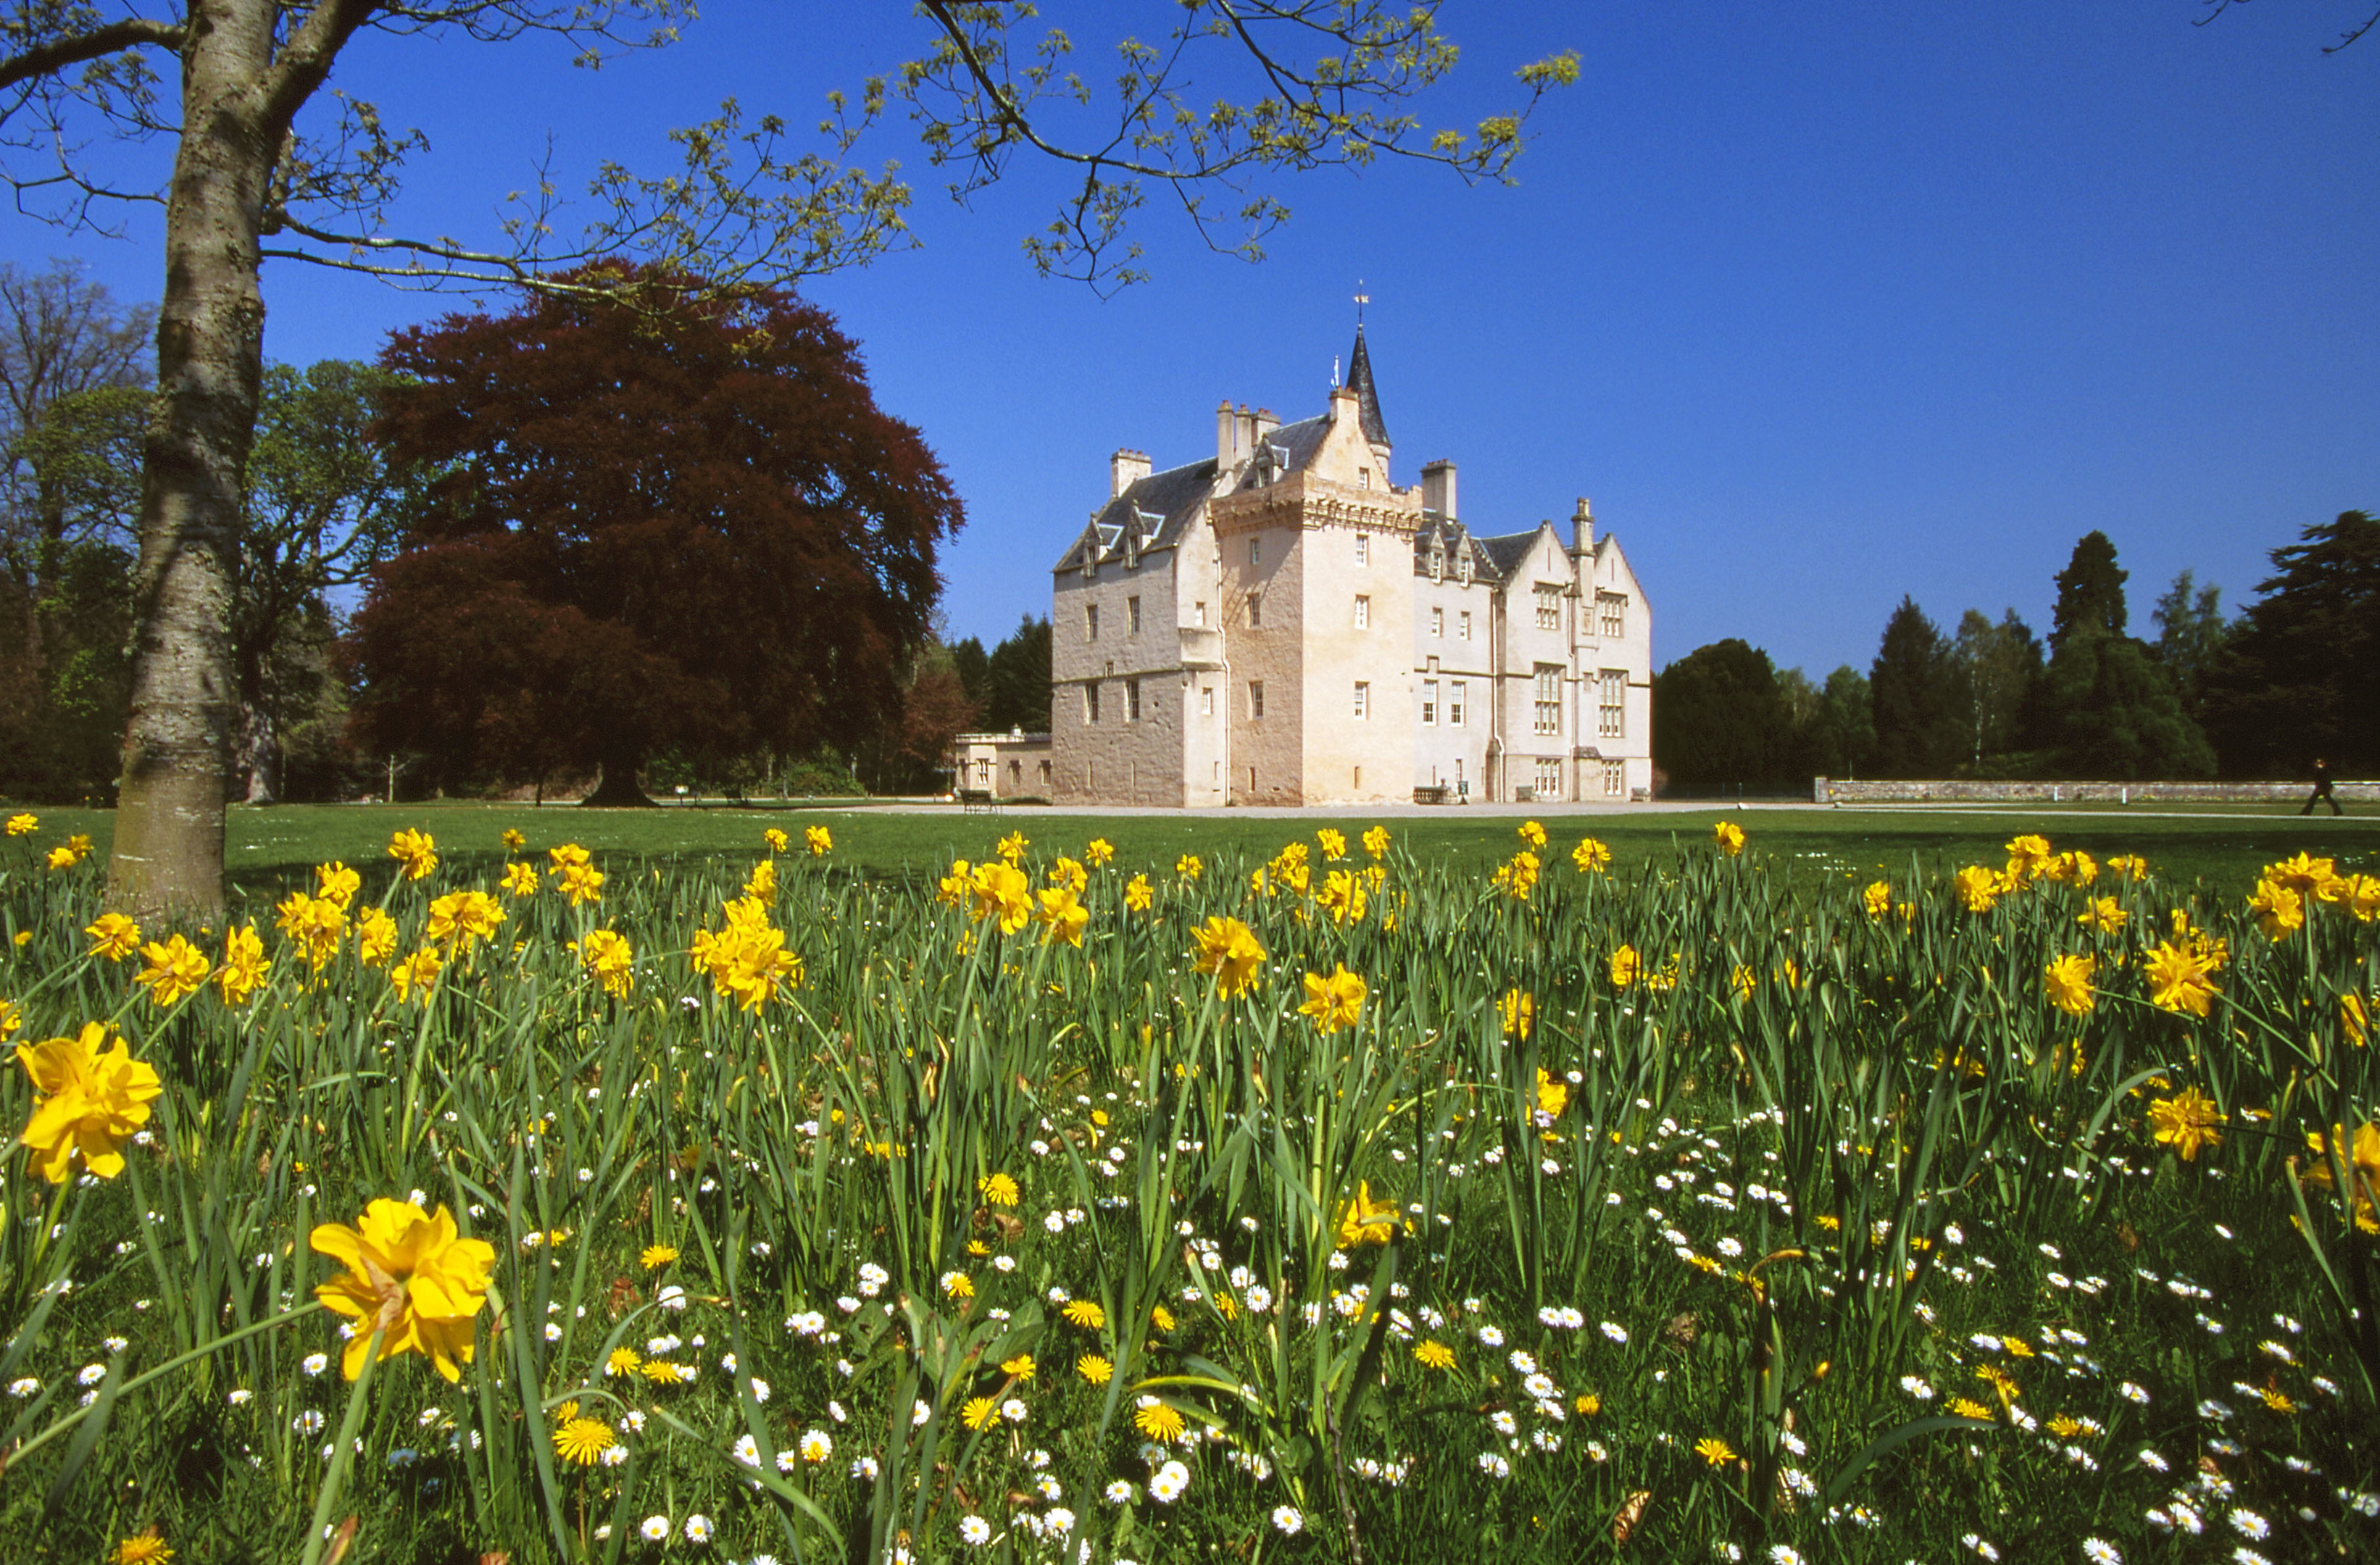 Brodie Castle is one of the places in line for additional investment